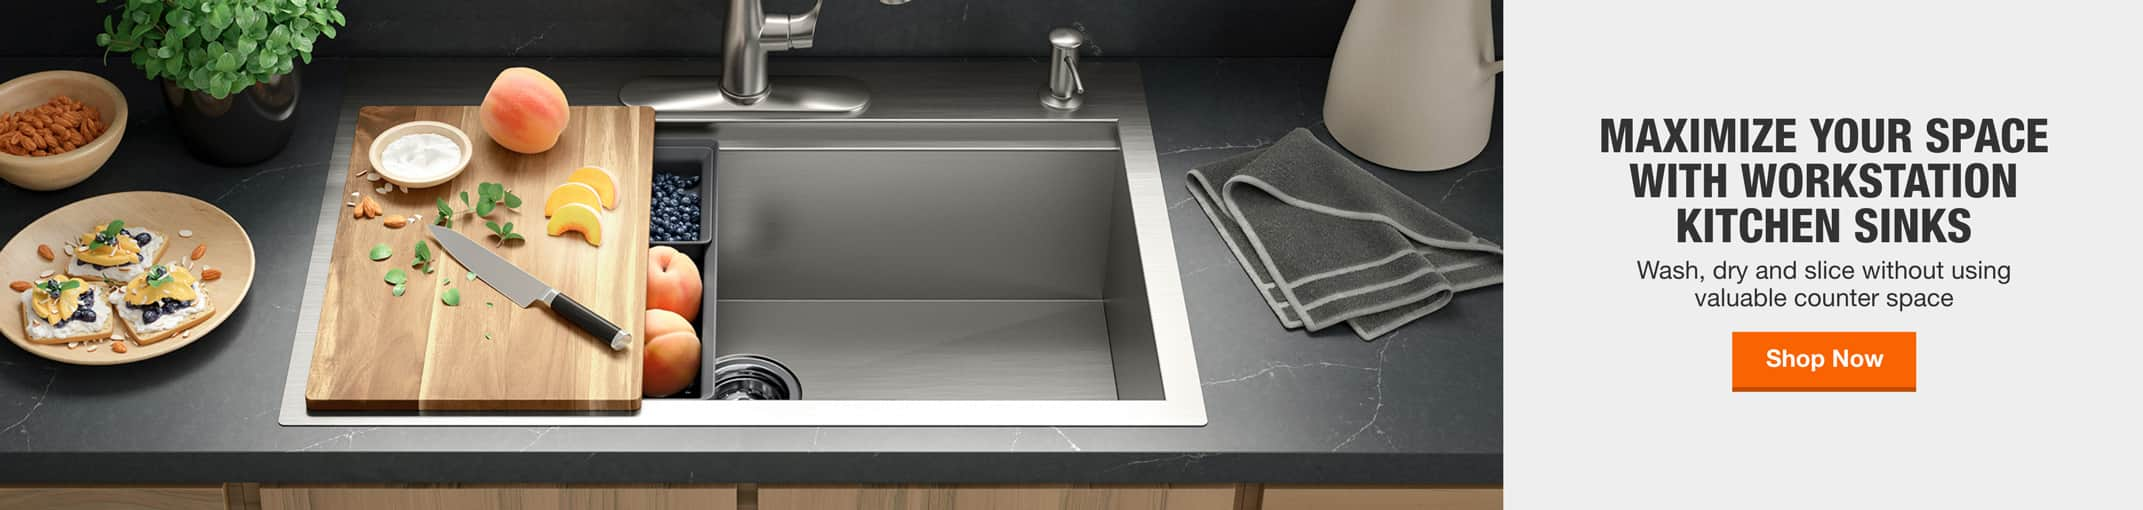 Maximize Your Space With Workstation Kitchen Sinks